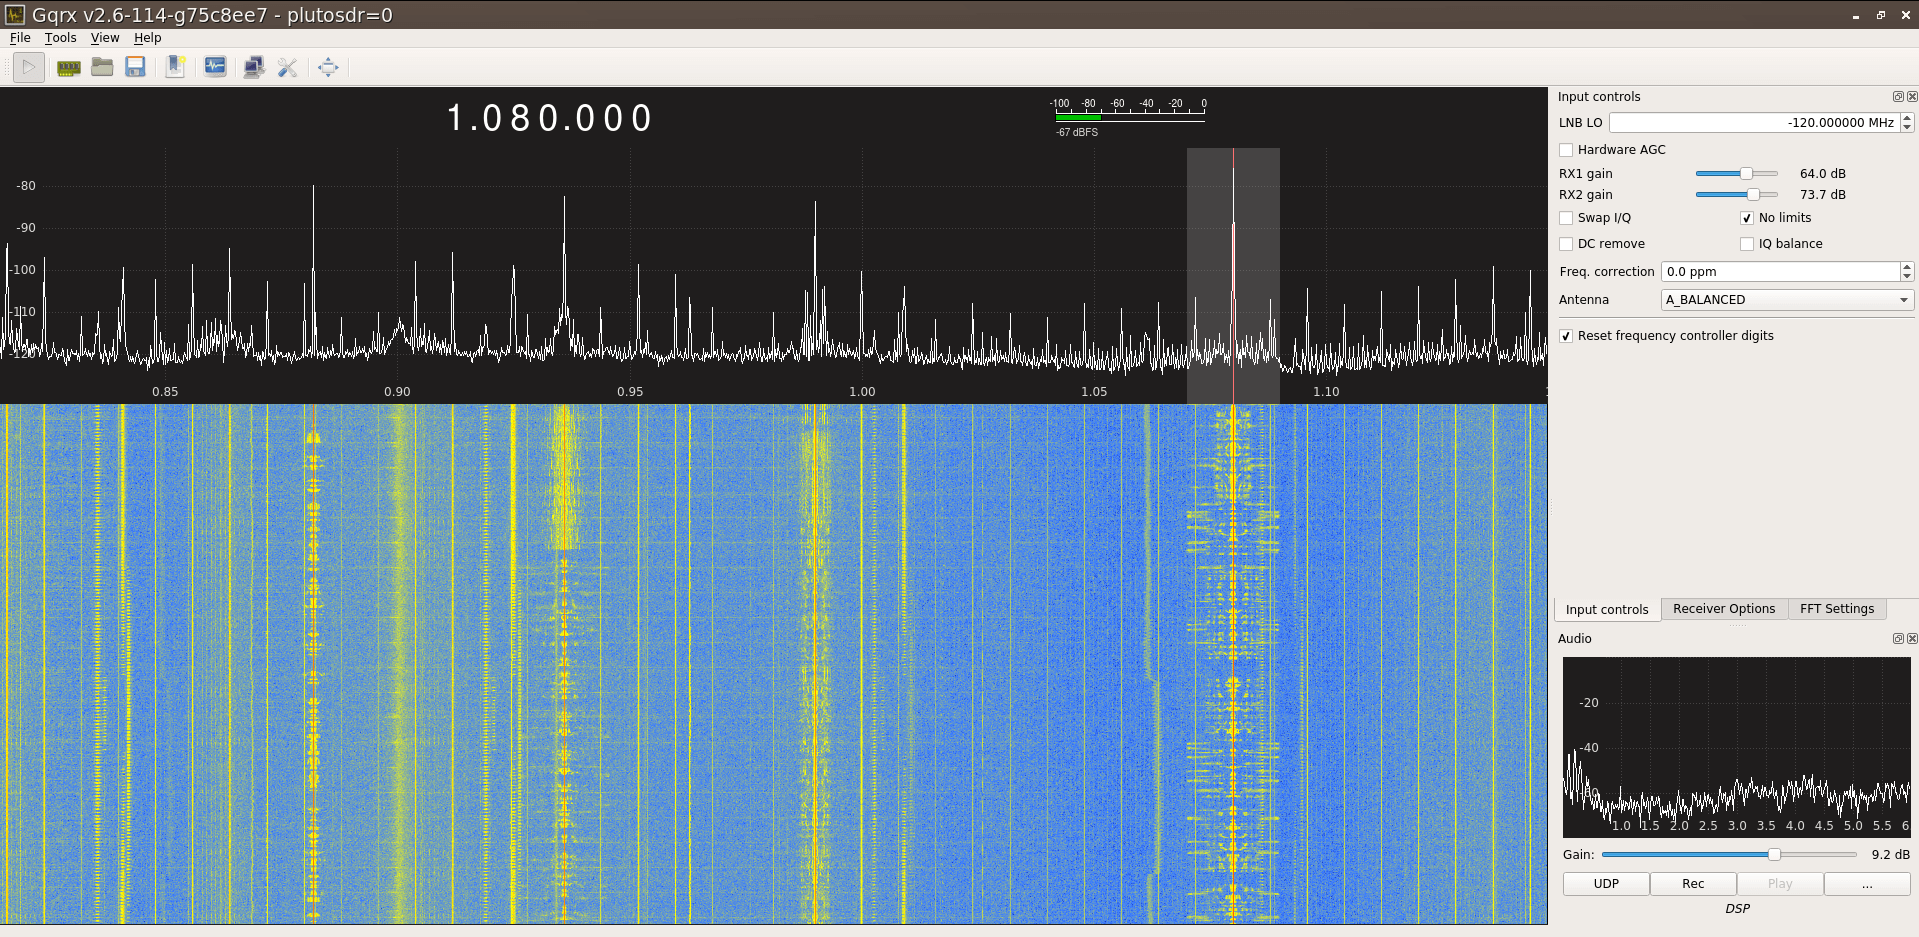 ADALM-PLUTO SDR Hack: Tune 70 MHz to 6 GHz and GQRX Install